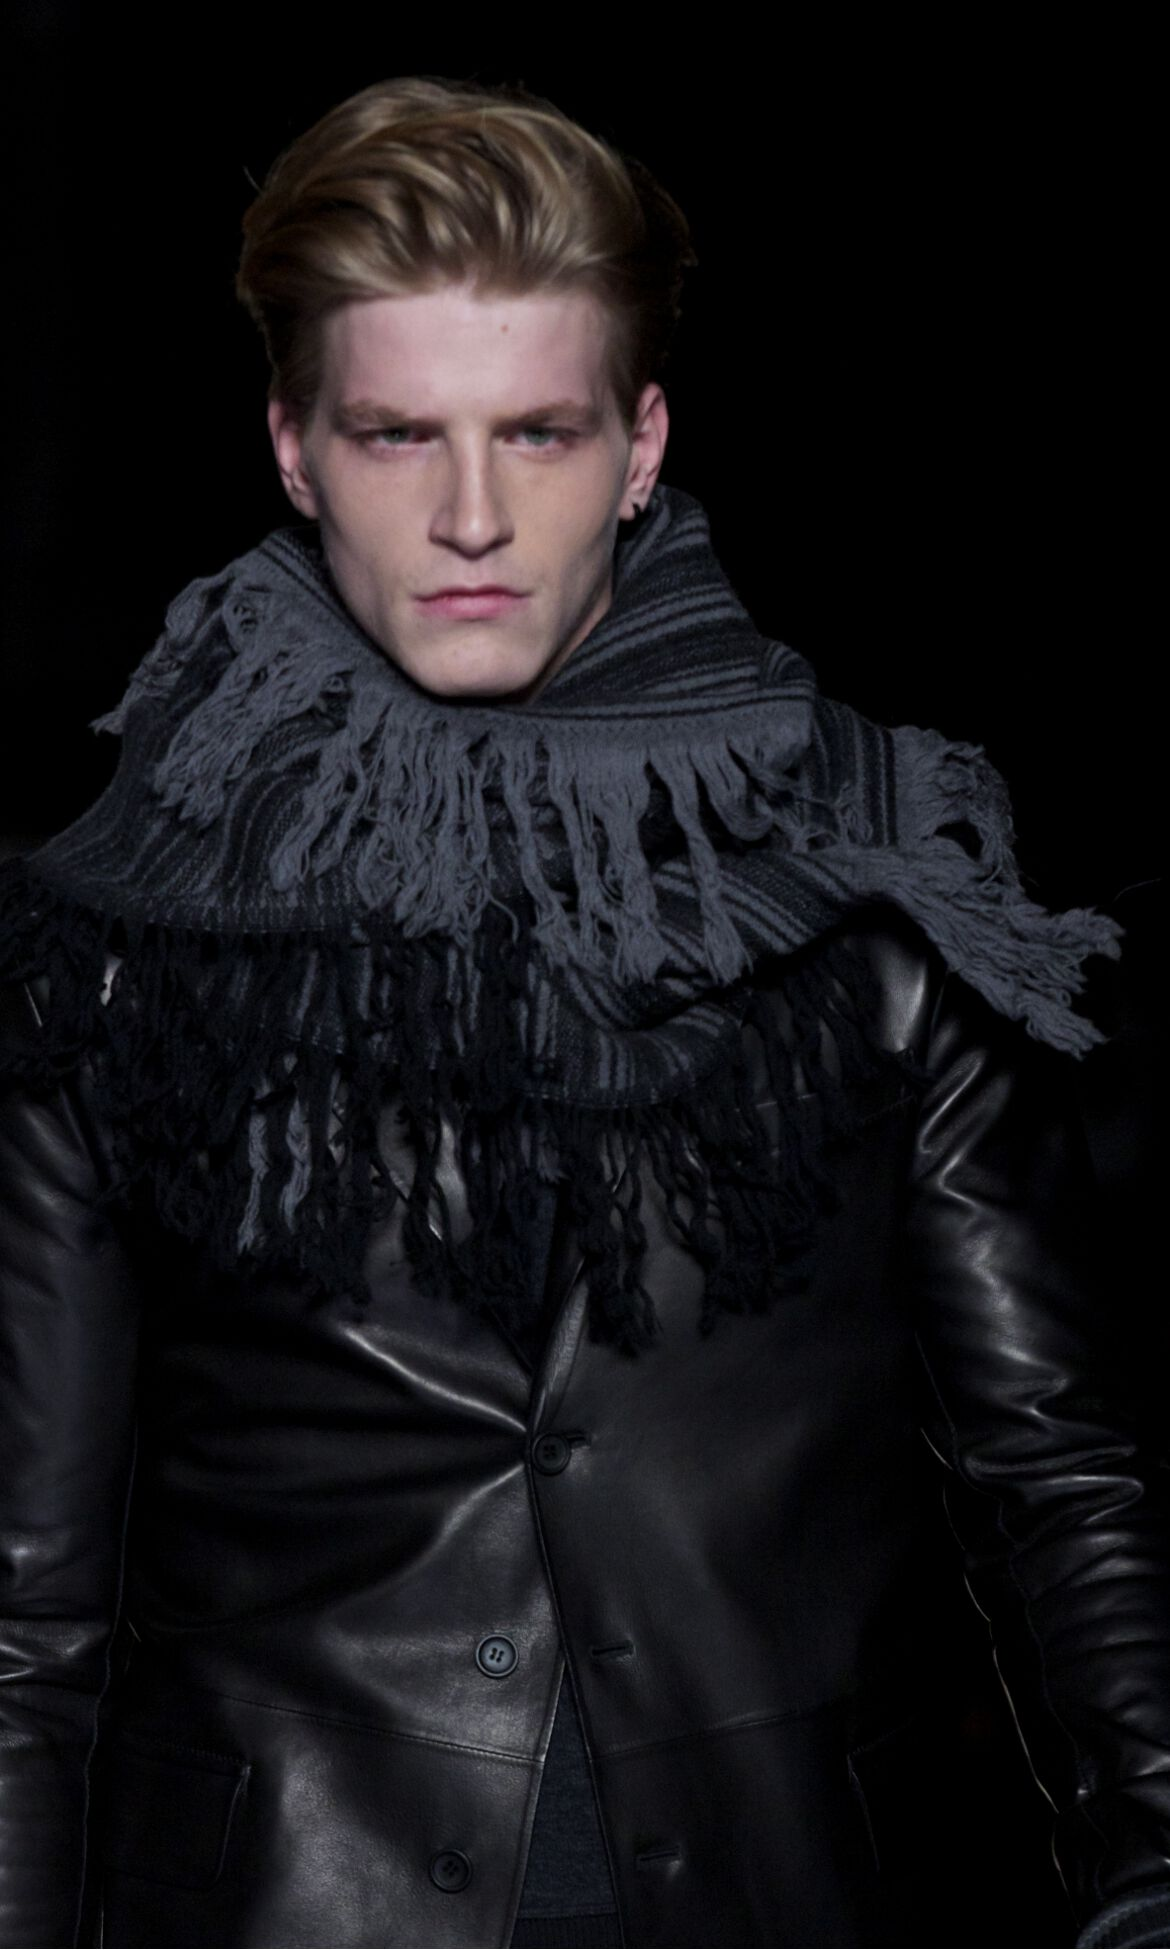 Ermanno Scervino Winter 2013 Catwalk Man Model Detail